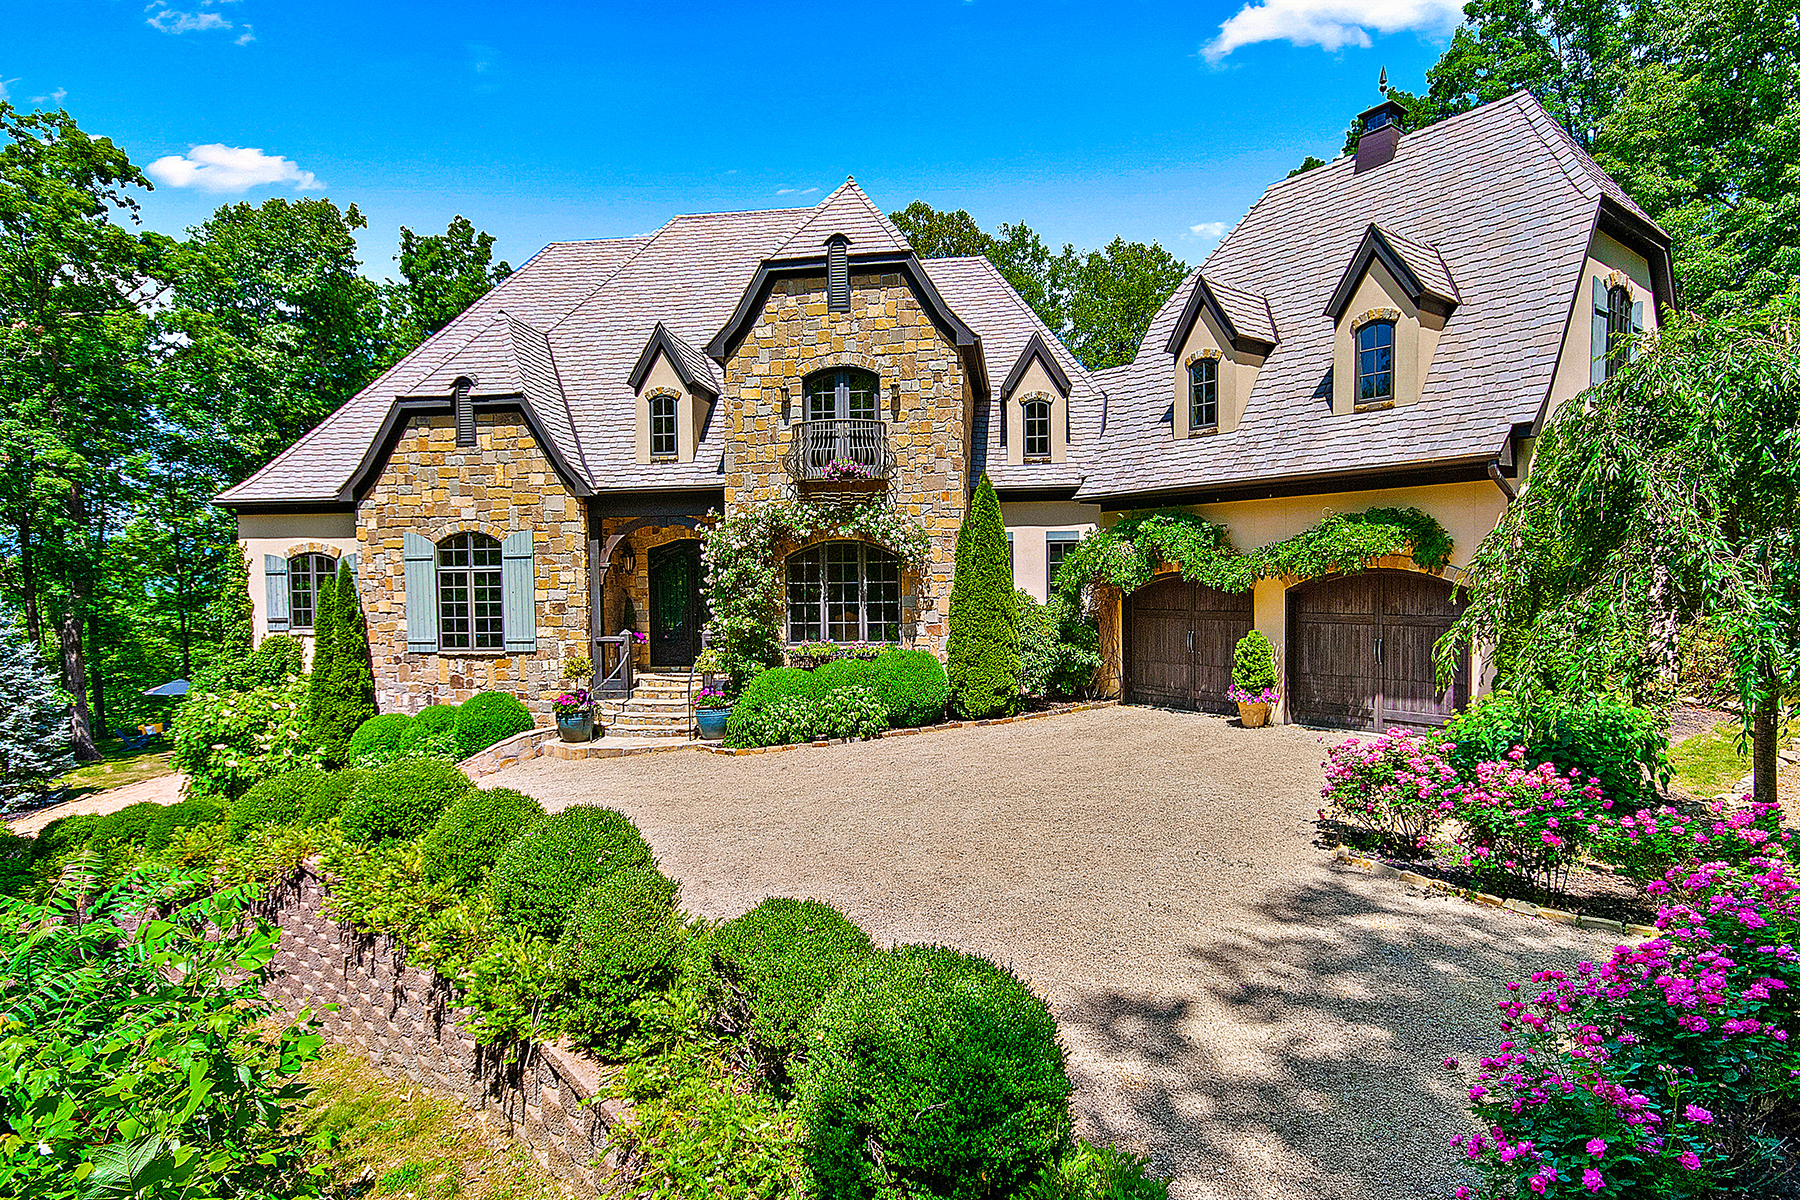 Single Family Homes for Active at MONARCH ESTATES 134 Sovereign Ln Fairview, North Carolina 28730 United States